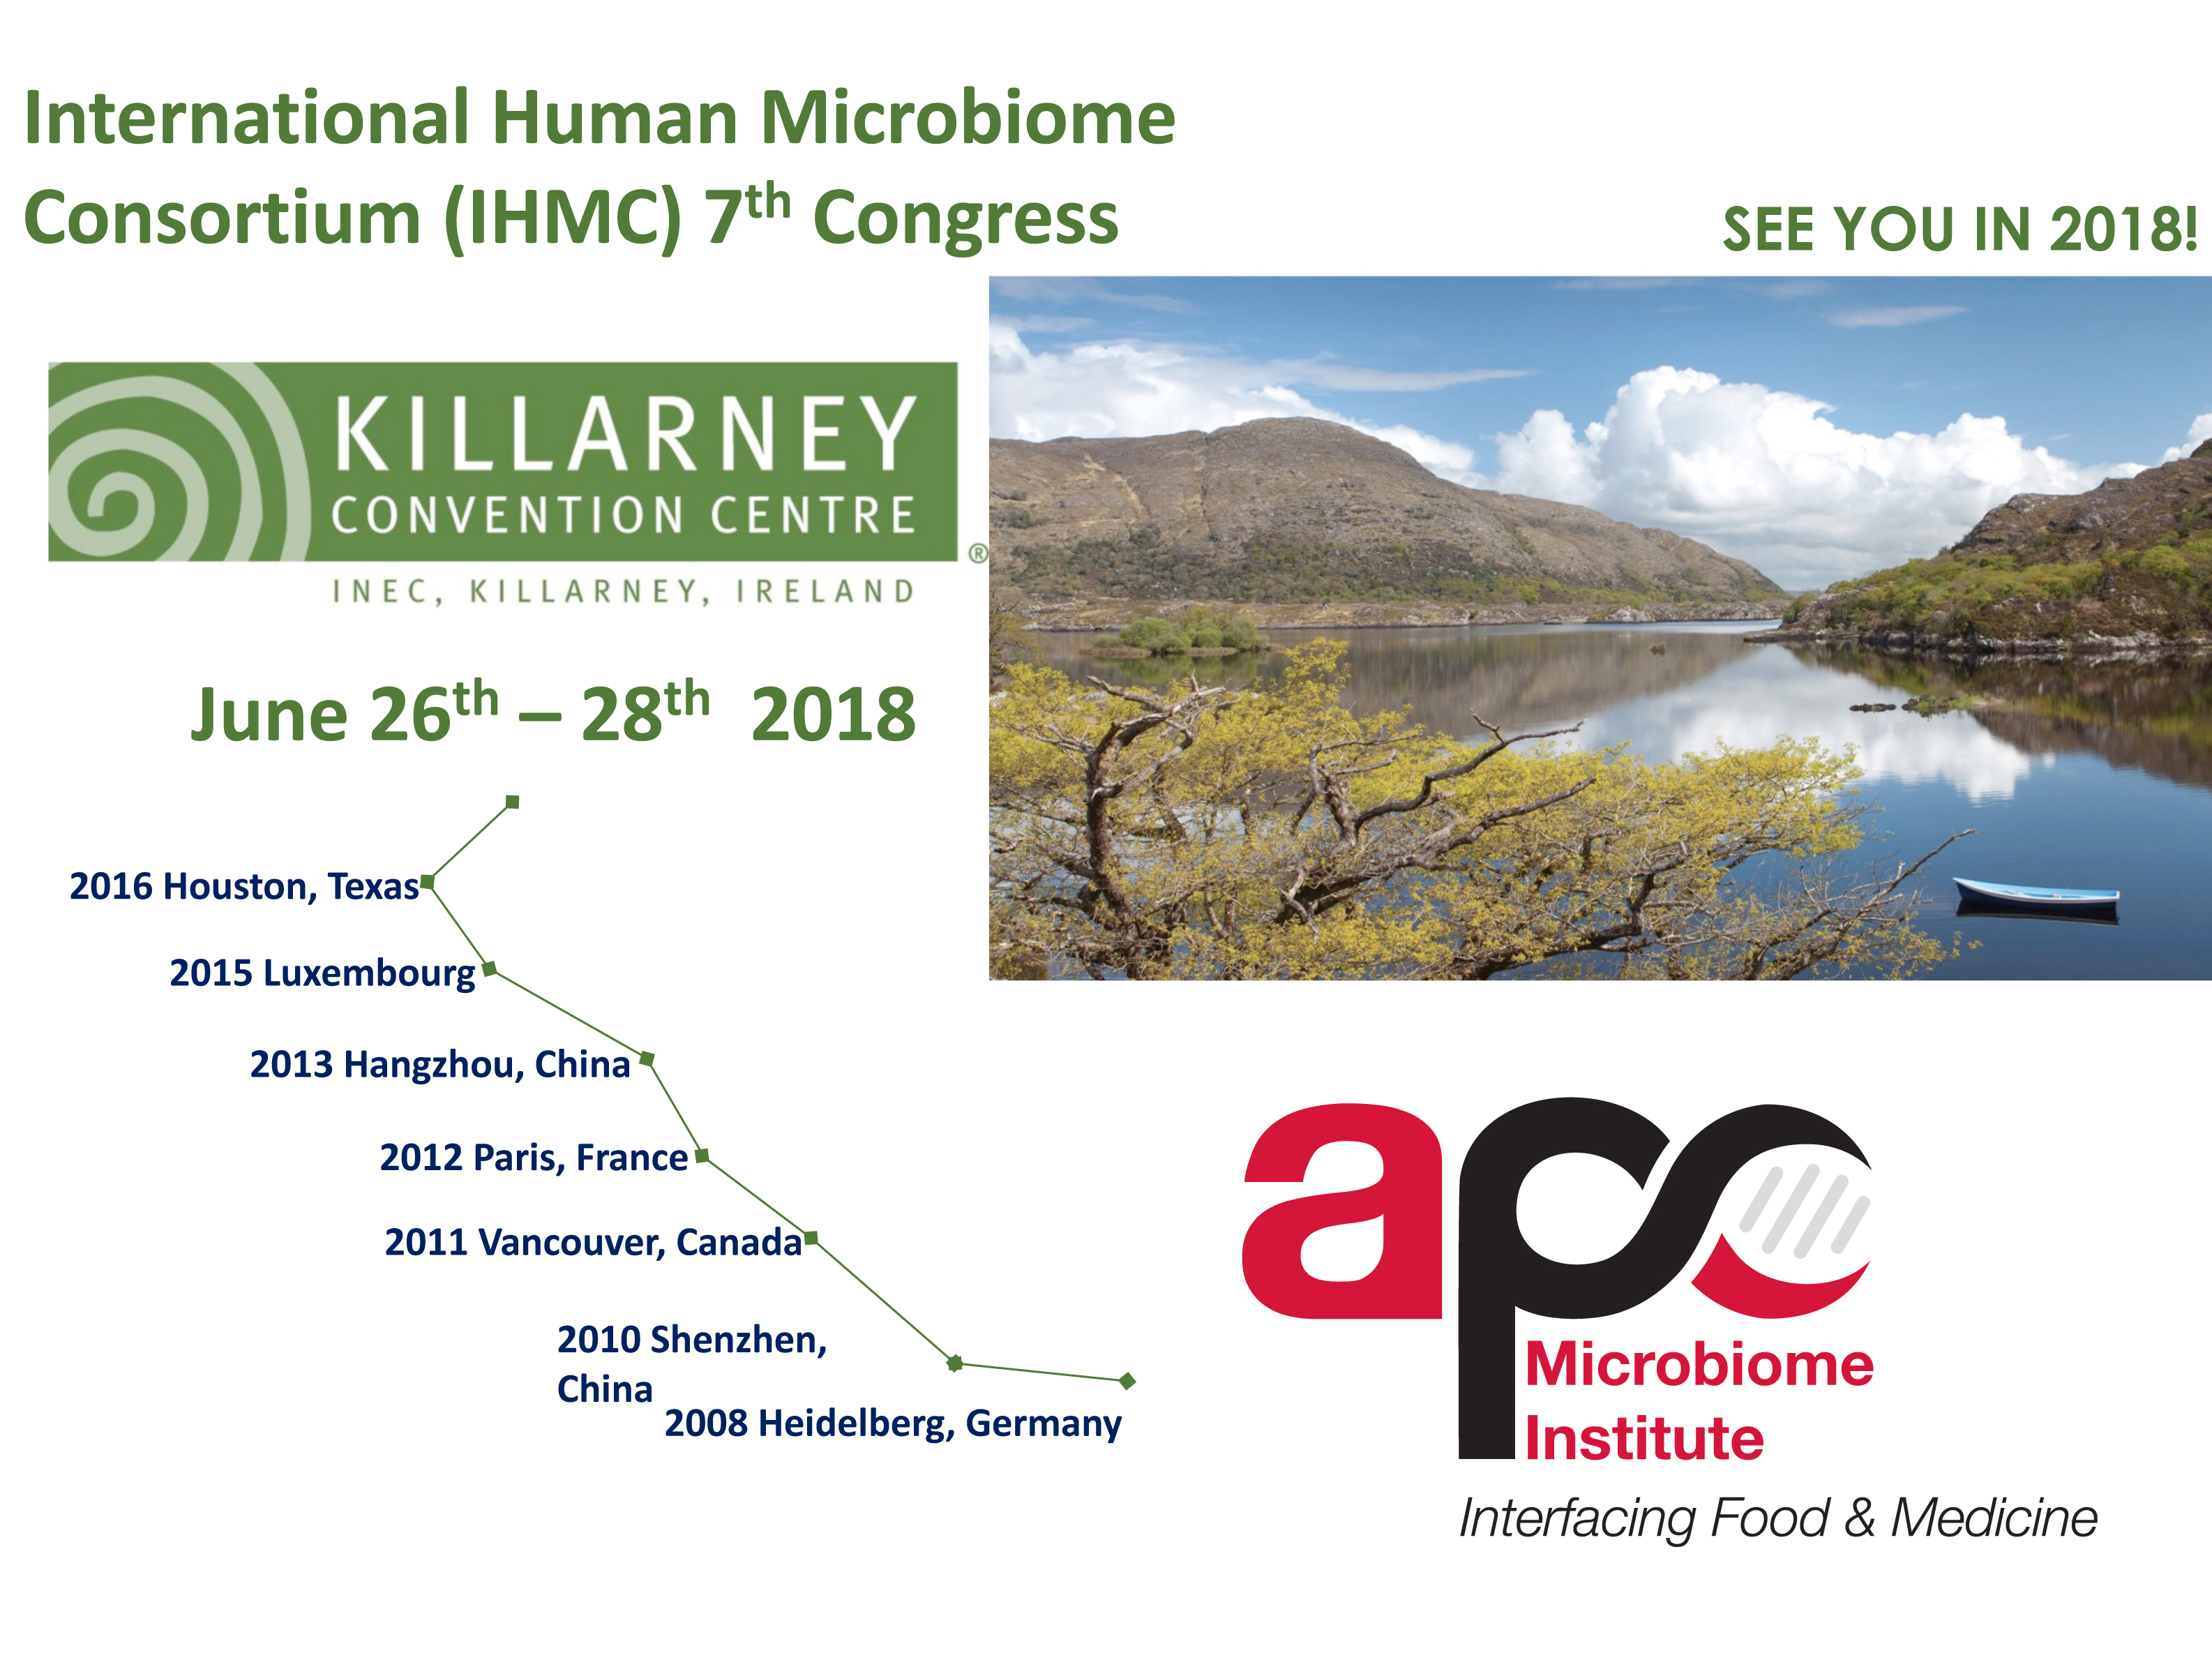 APC Microbiome Institute will host the 2018 International Human Microbiome Congress in Cork